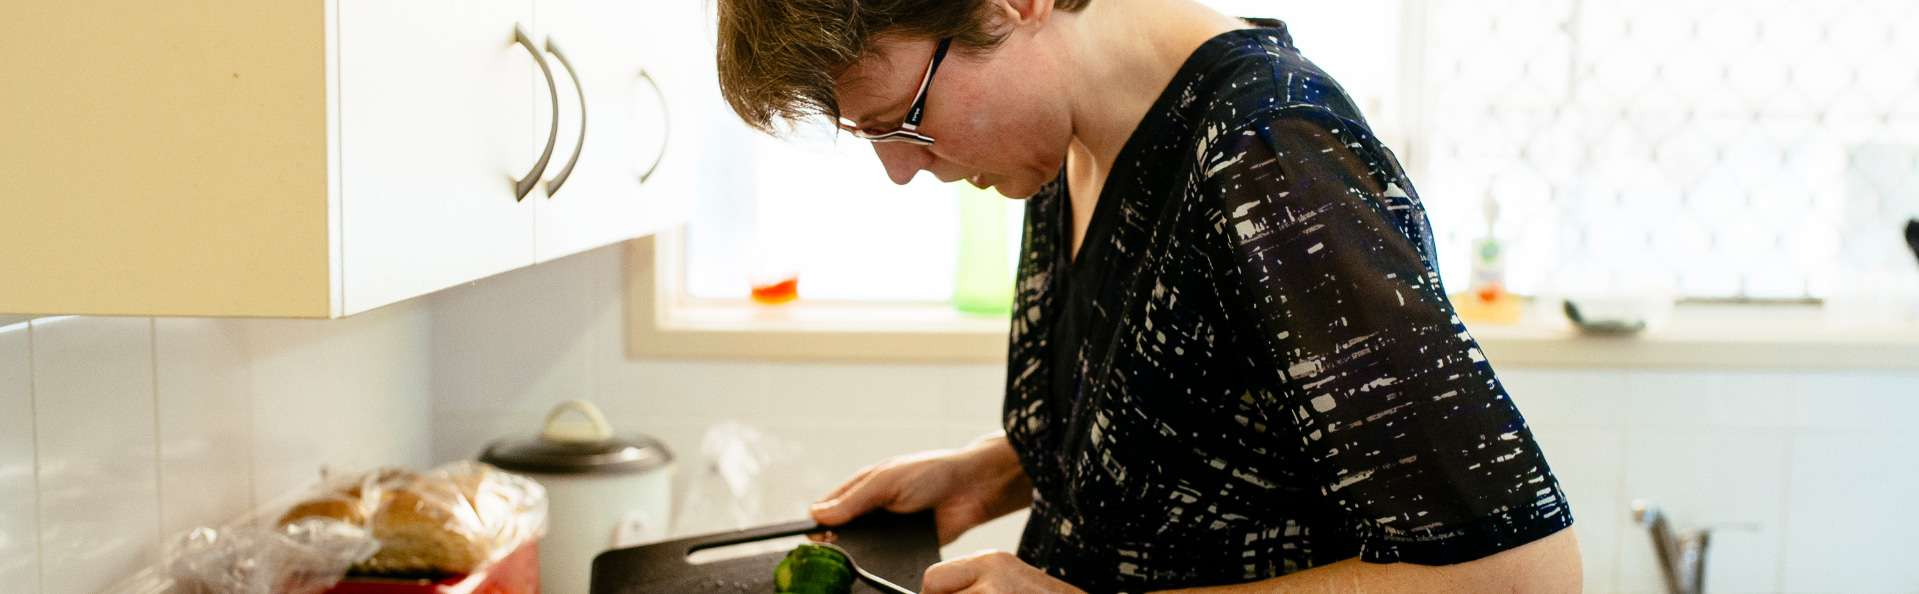 Supported Independent Living client prepares a salad for lunch